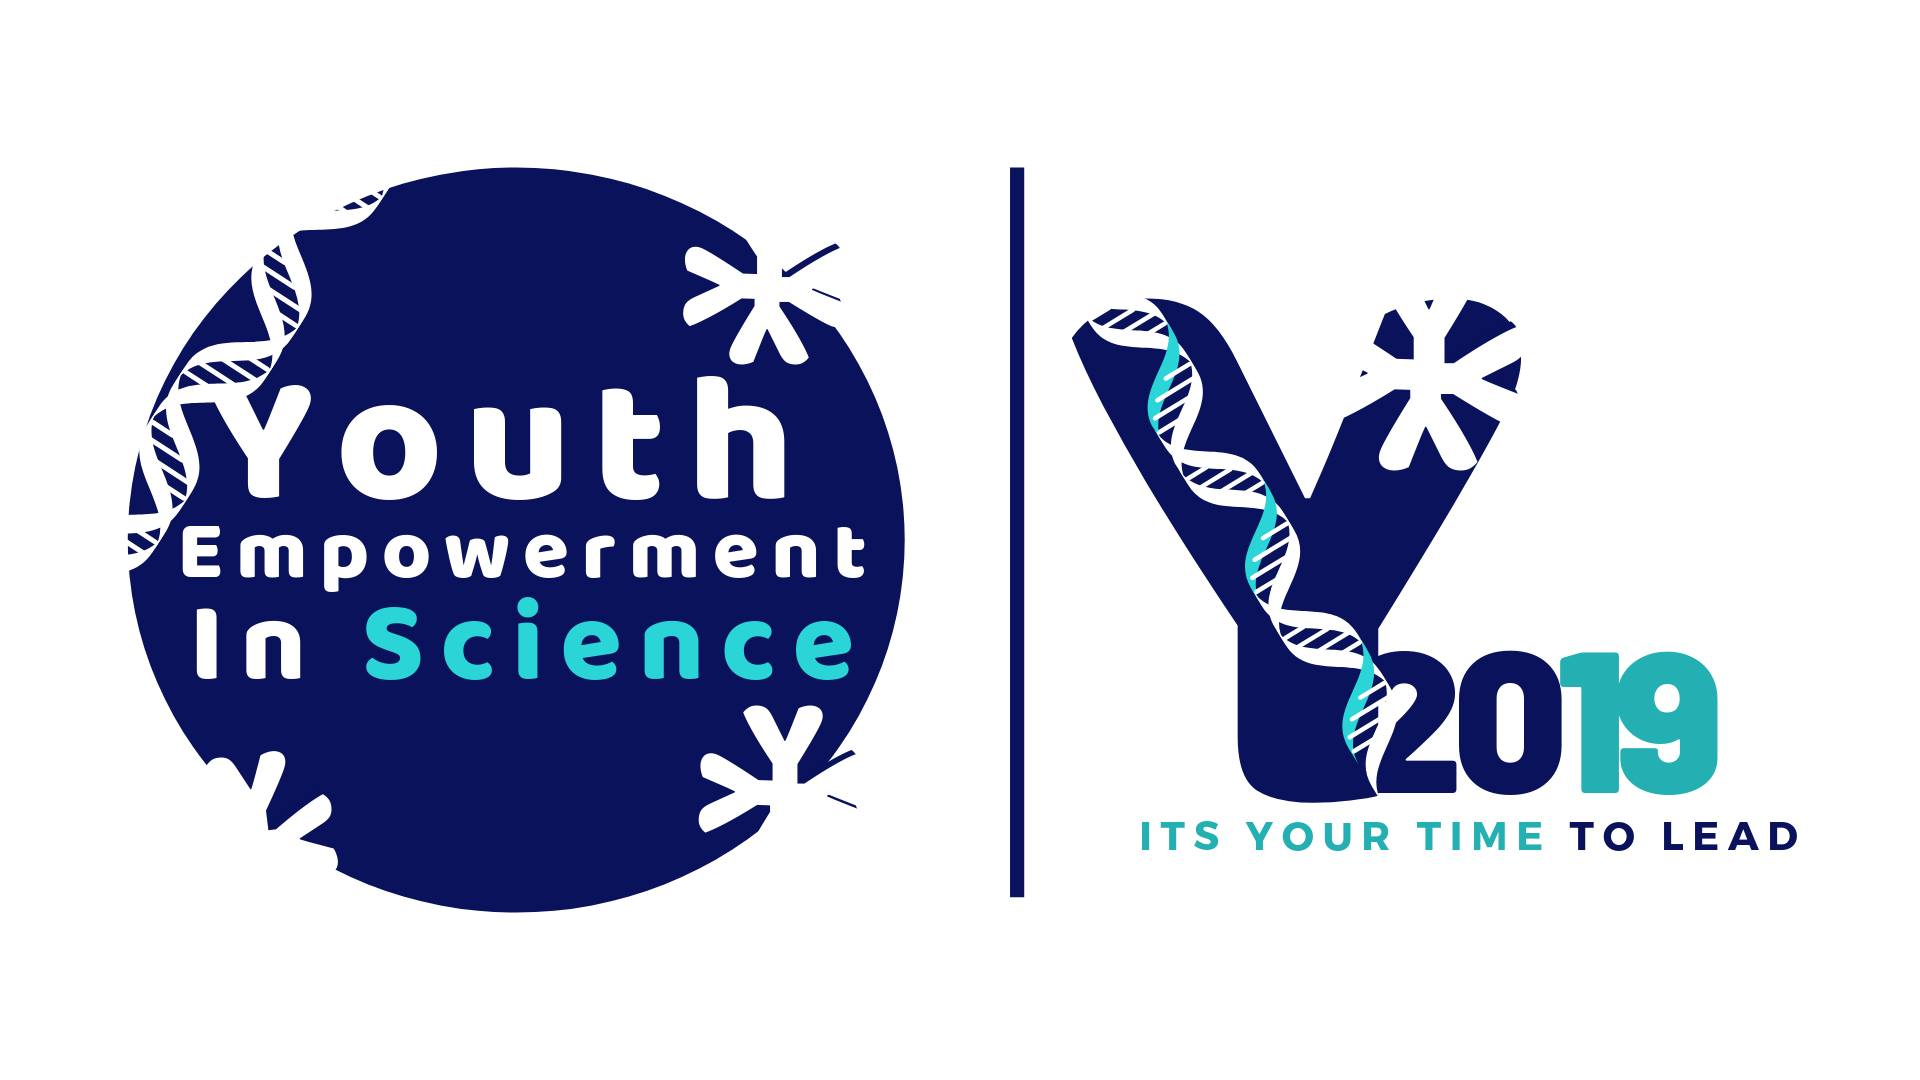 Youth empowerment in sciences